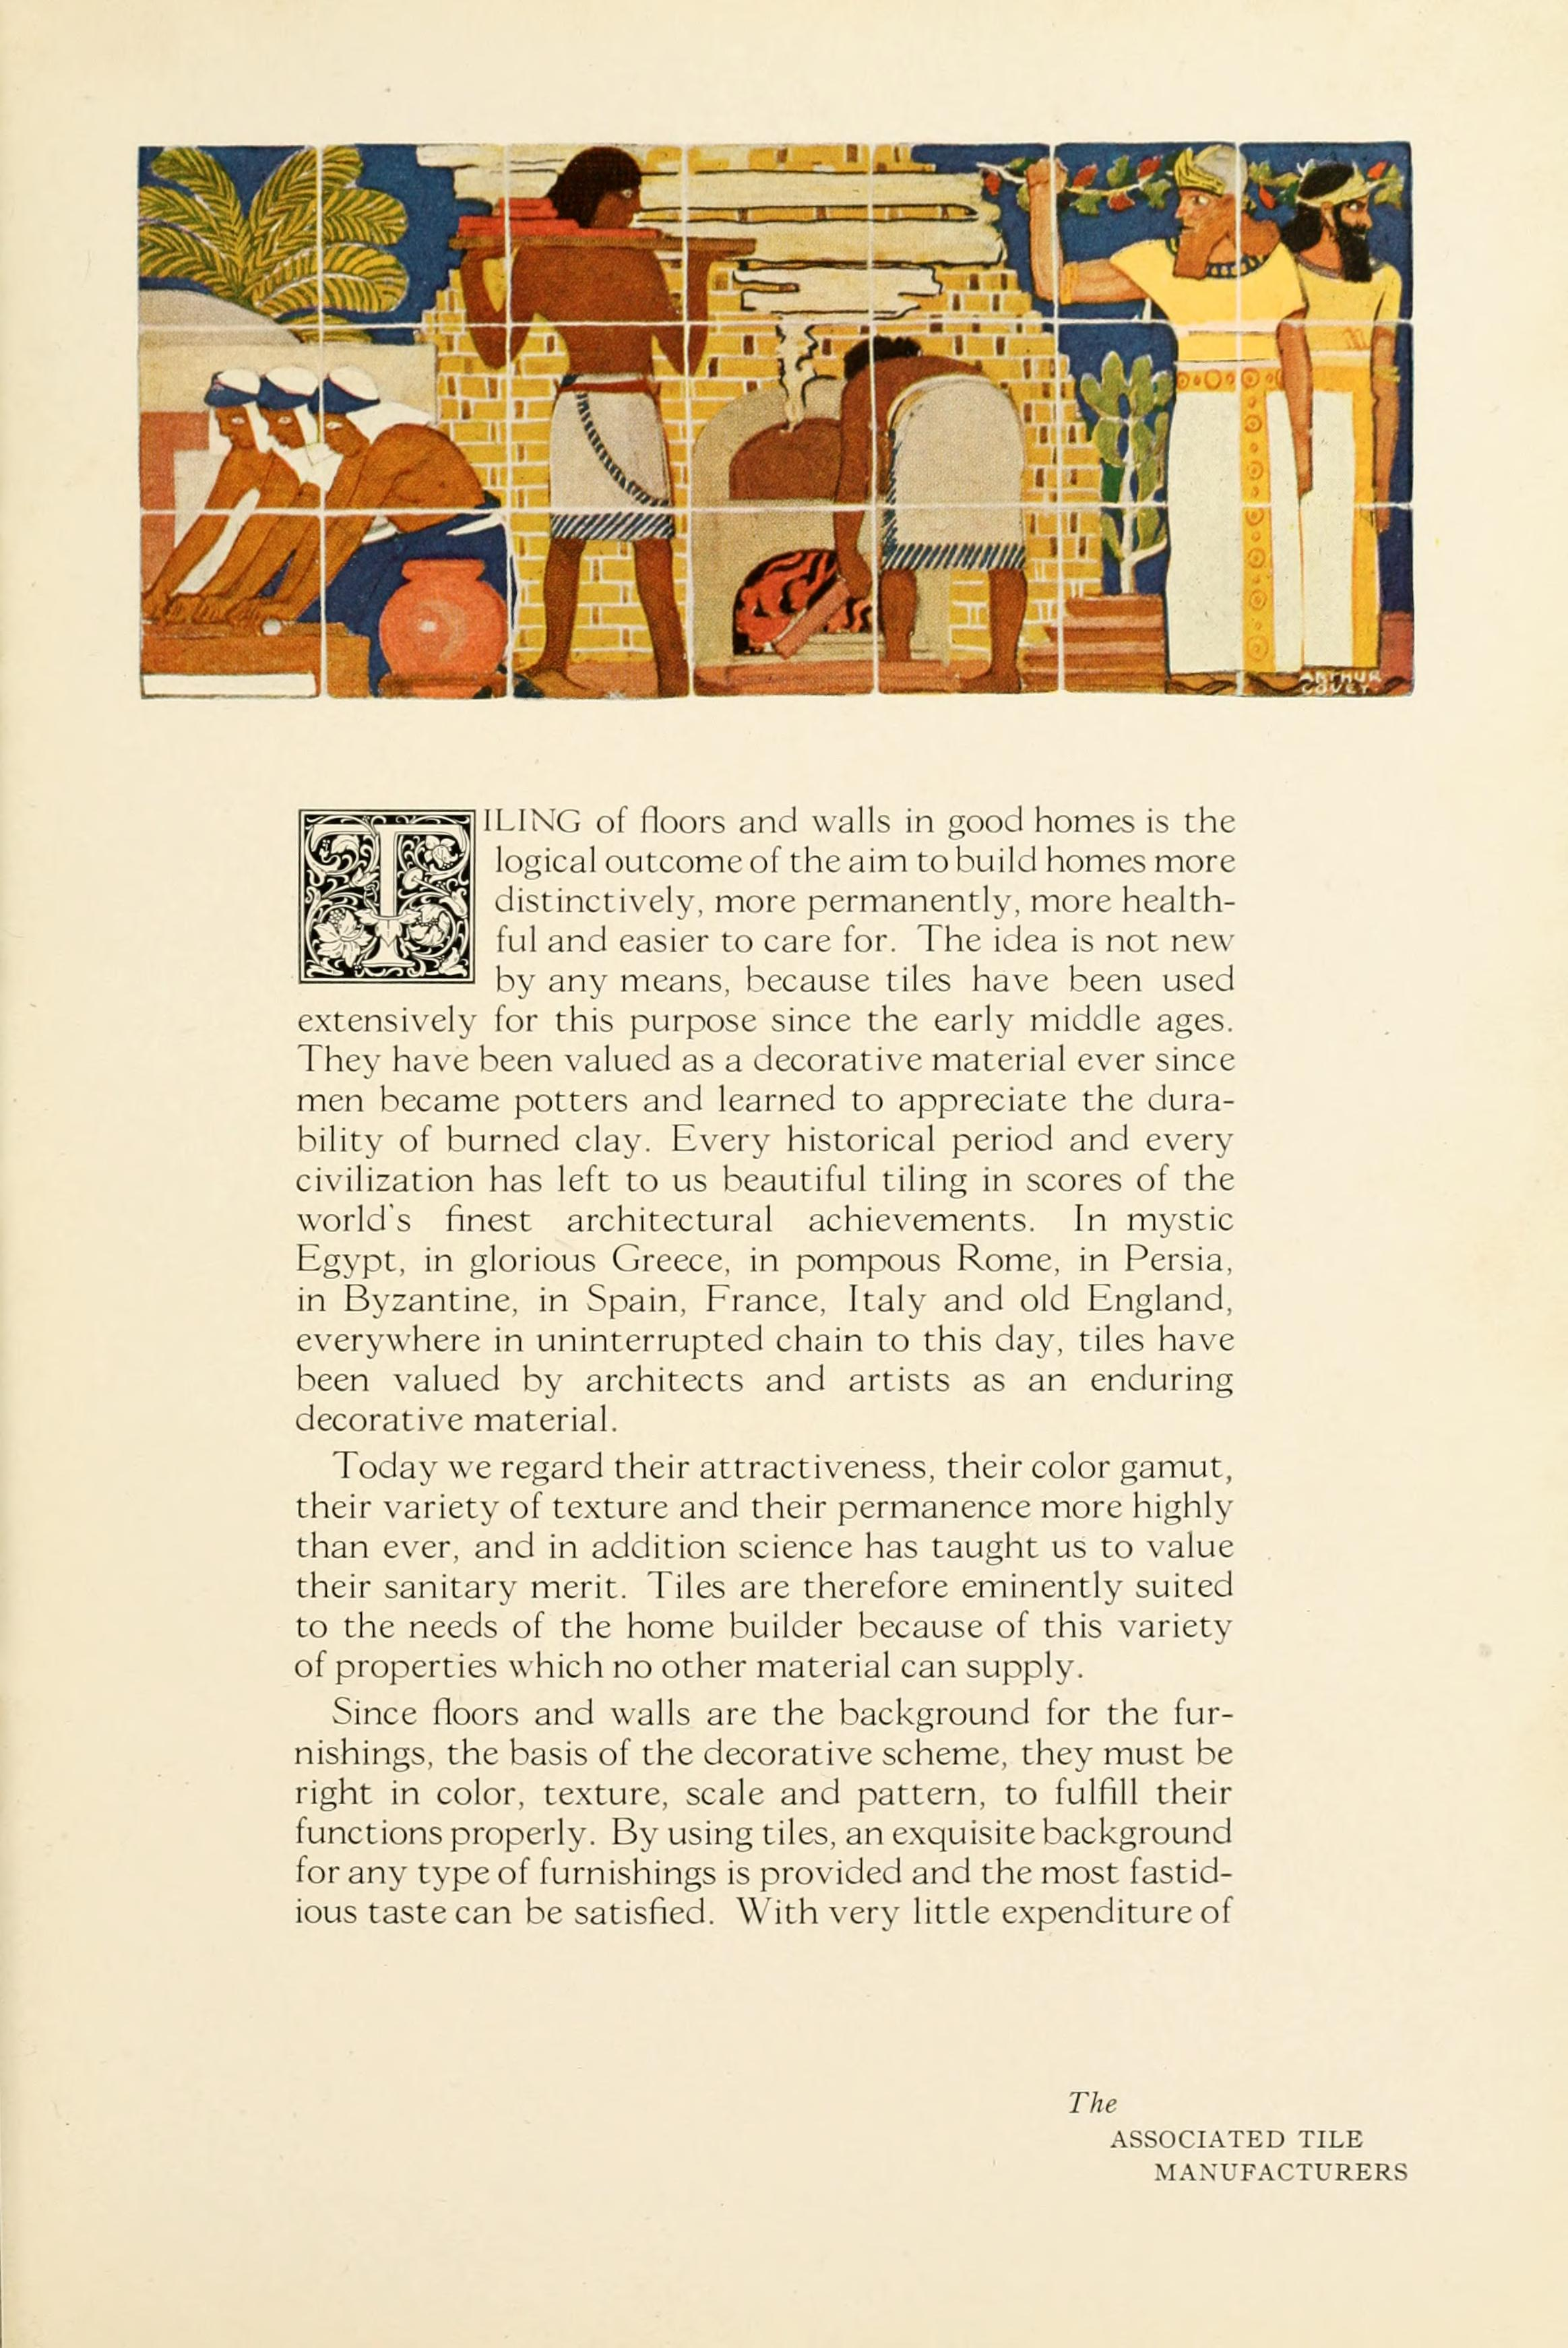 Home suggestions. (1921) (14595451729).jpg English: Identifier: homesuggestions00asso (find matches) Title: Home suggestions. Year: 1921 (1920s)